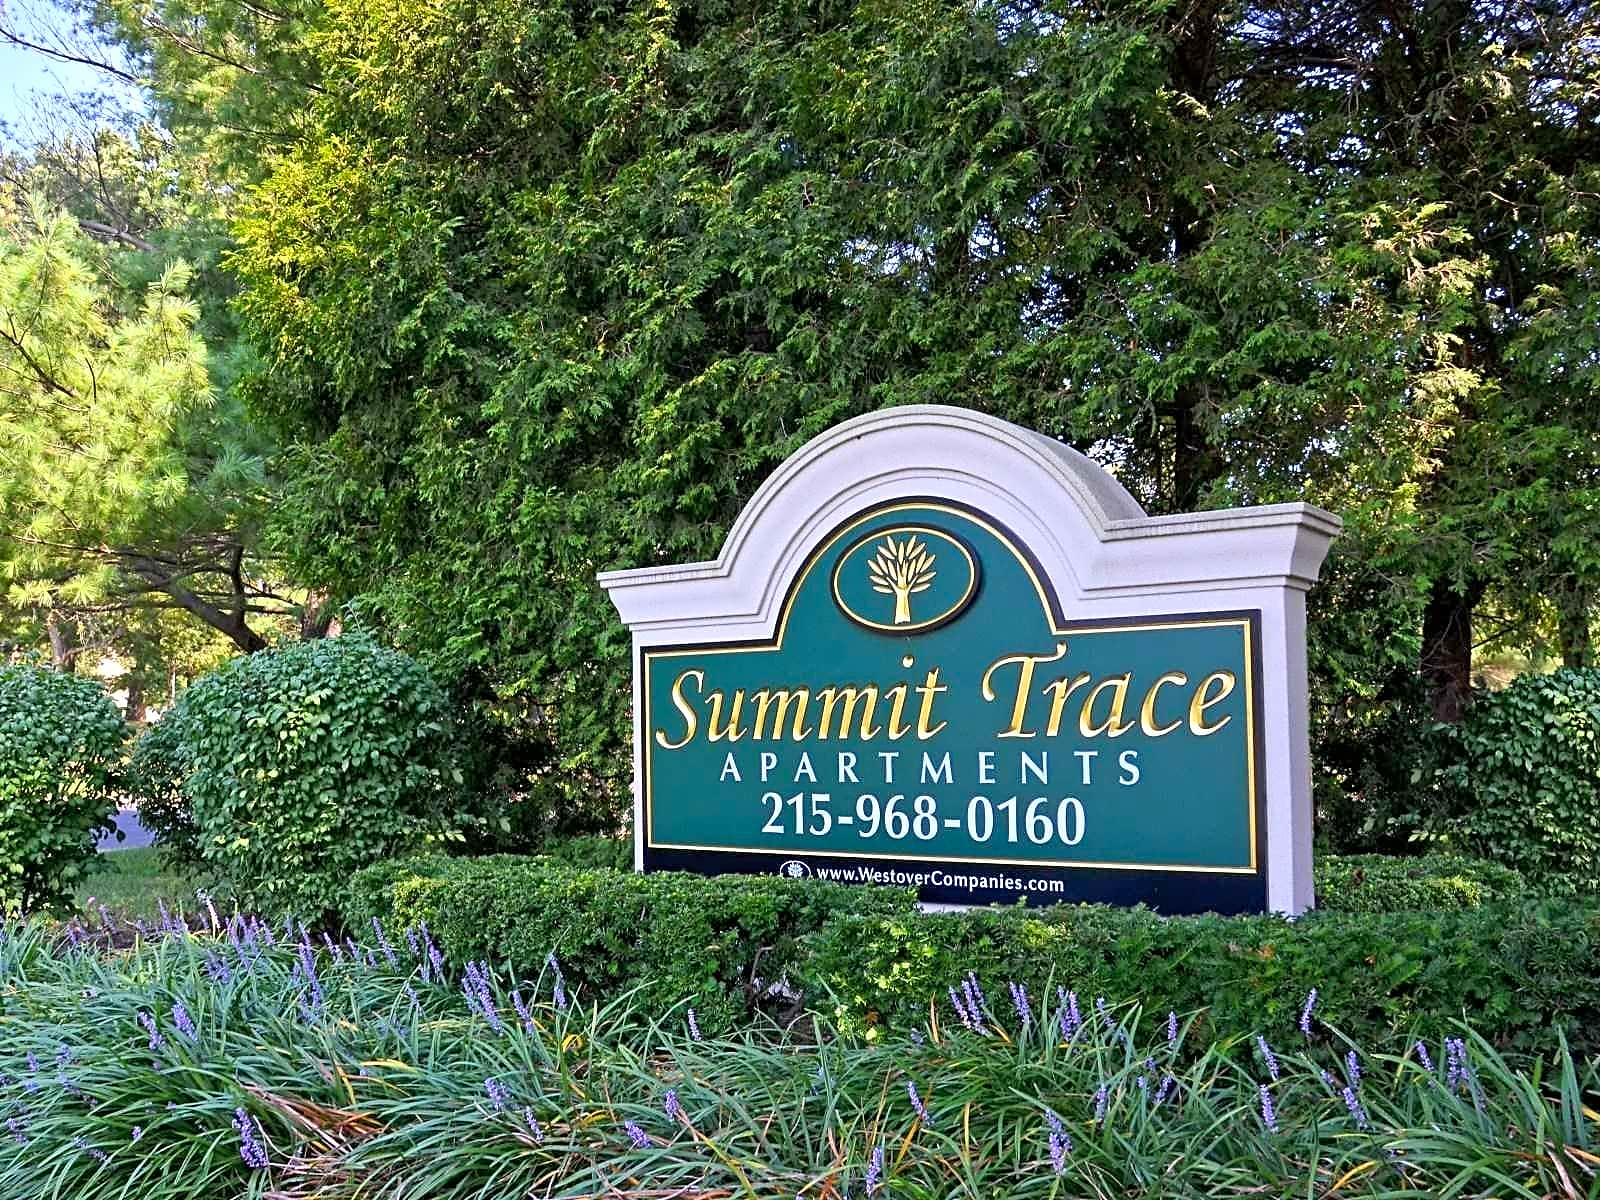 Apartments Near PBU Summit Trace At Newtown for Philadelphia Biblical University Students in Langhorne, PA